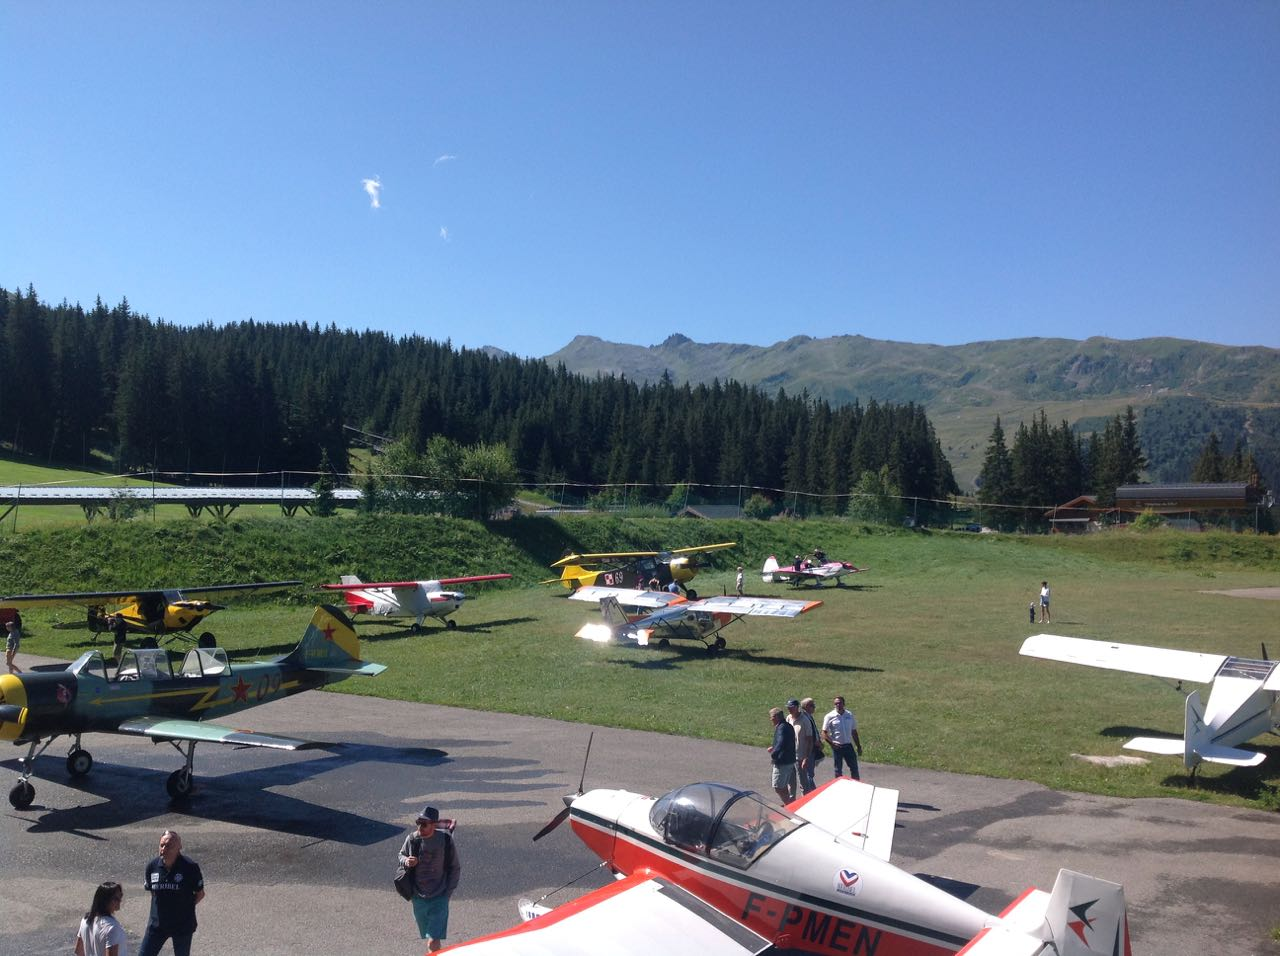 http://ac-meribel.com/wp-content/uploads/2018/08/photo-13.jpg